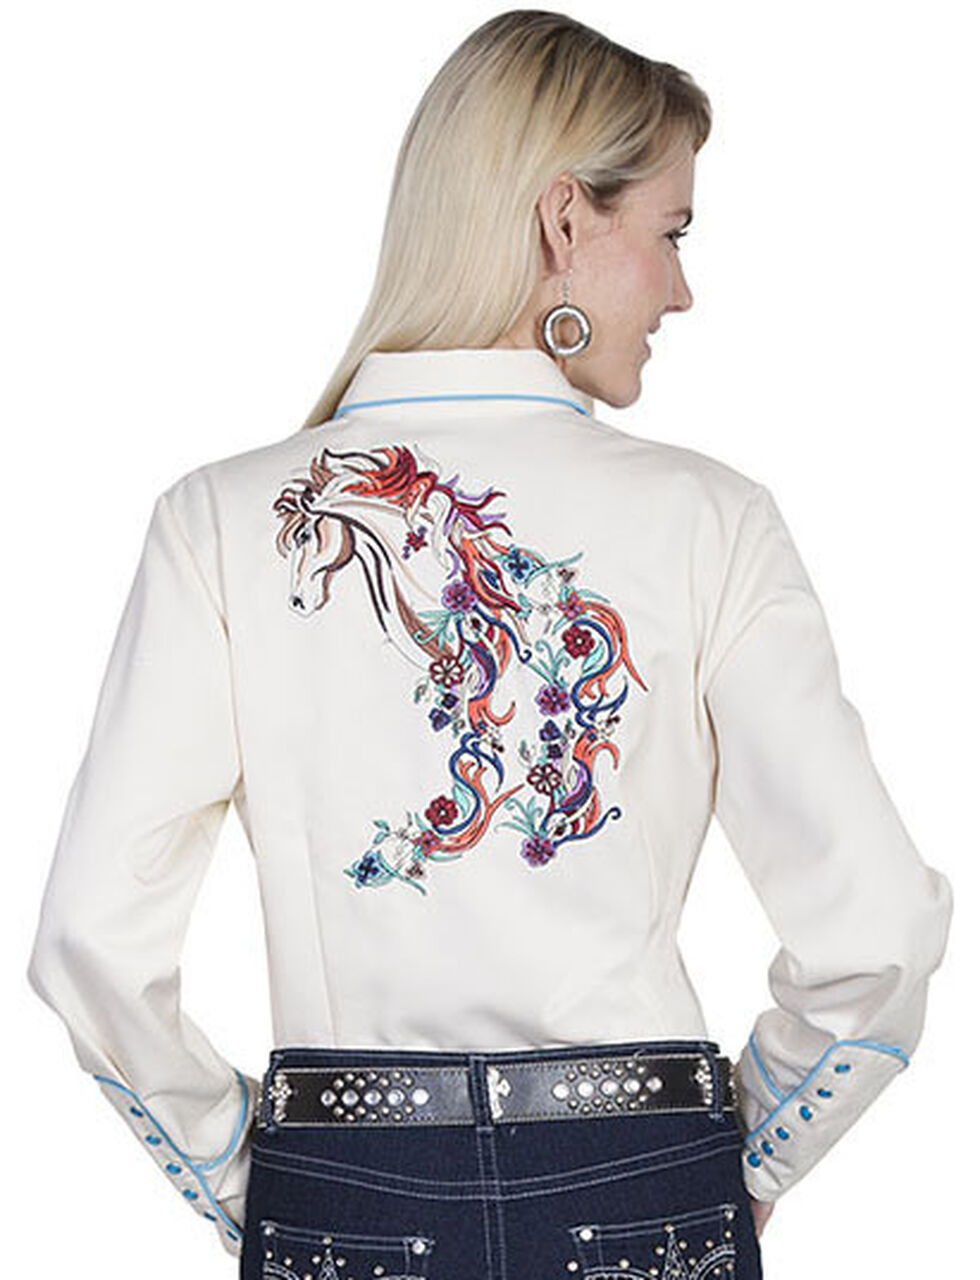 Scully Women's Colorful Horse Embroidered Long Sleeve Shirt, Cream, hi-res